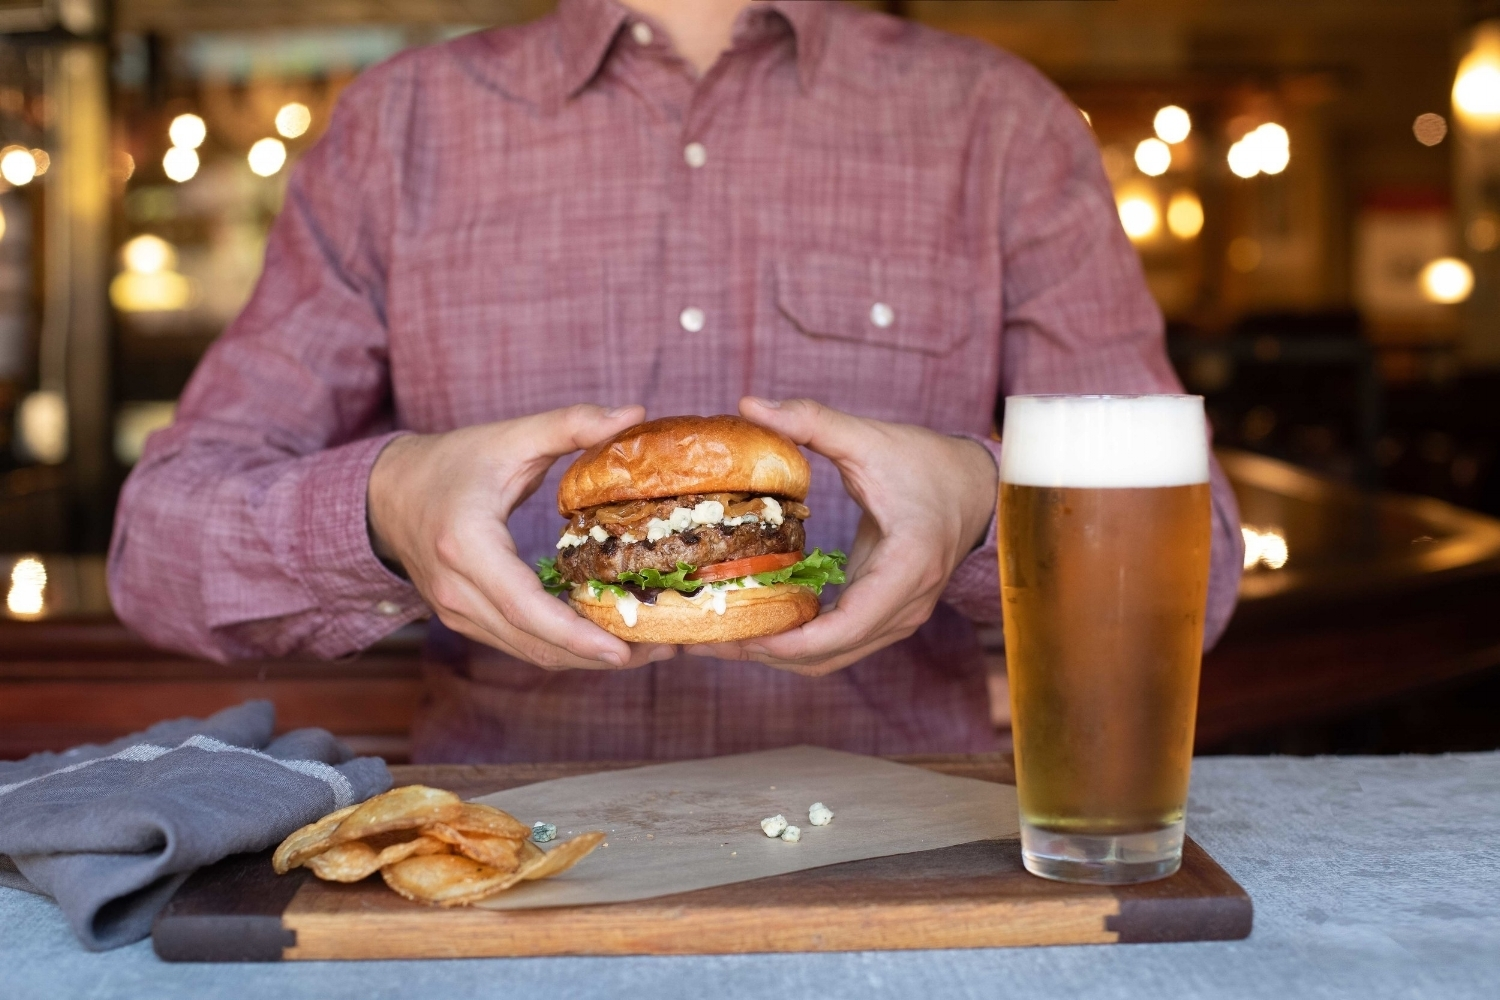 Jimena-Peck-Denver-Food-Photographer-Gordon-Biersch-Brewery-Big-Burger